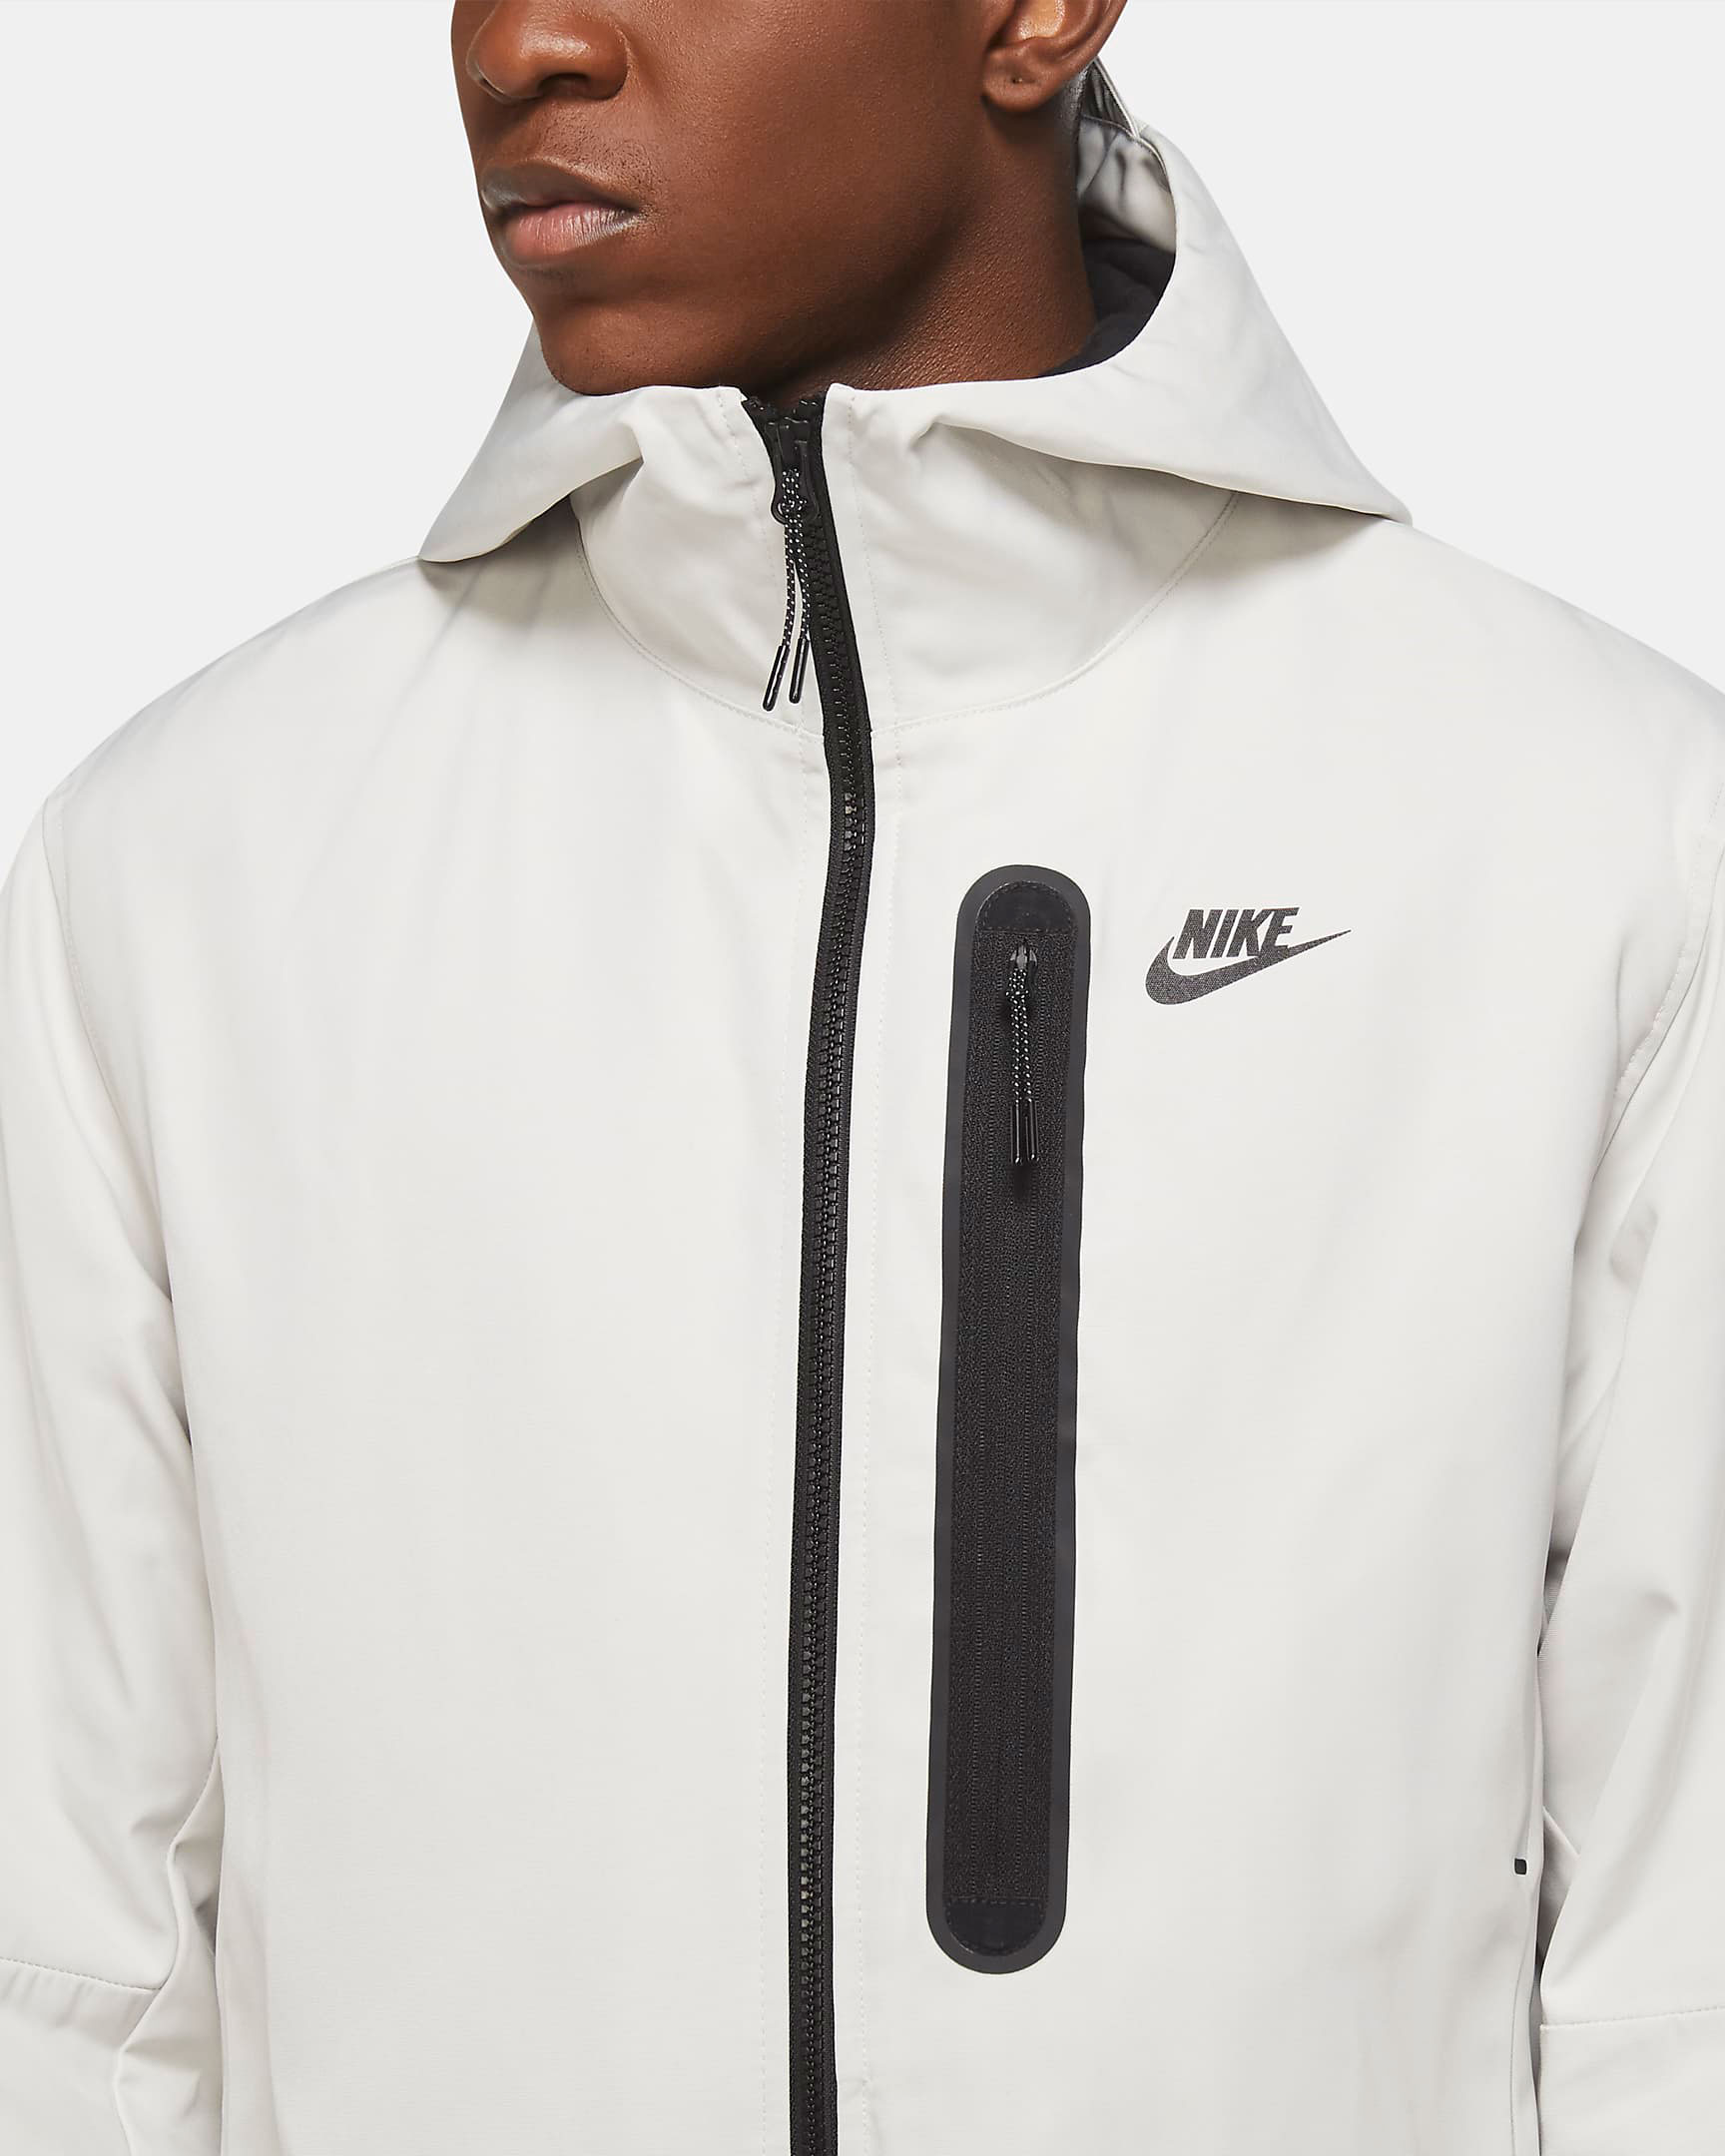 nike-sportswear-tech-essentials-repel-jacket-bone-black-4